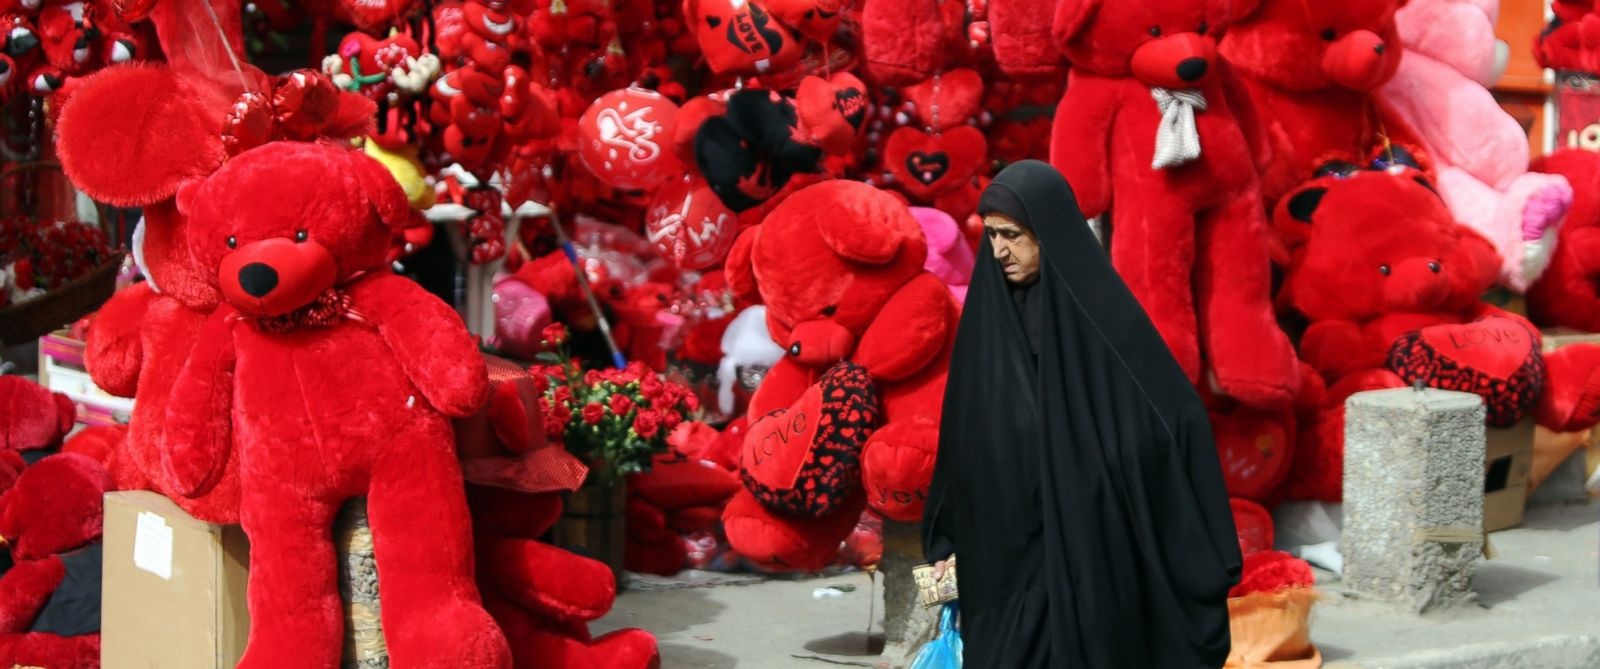 PHOTO: An Iraqi woman walks past a shop displaying red teddy bears in preparation for Valentines day in Baghdads Karrada district, Feb. 12, 2015.